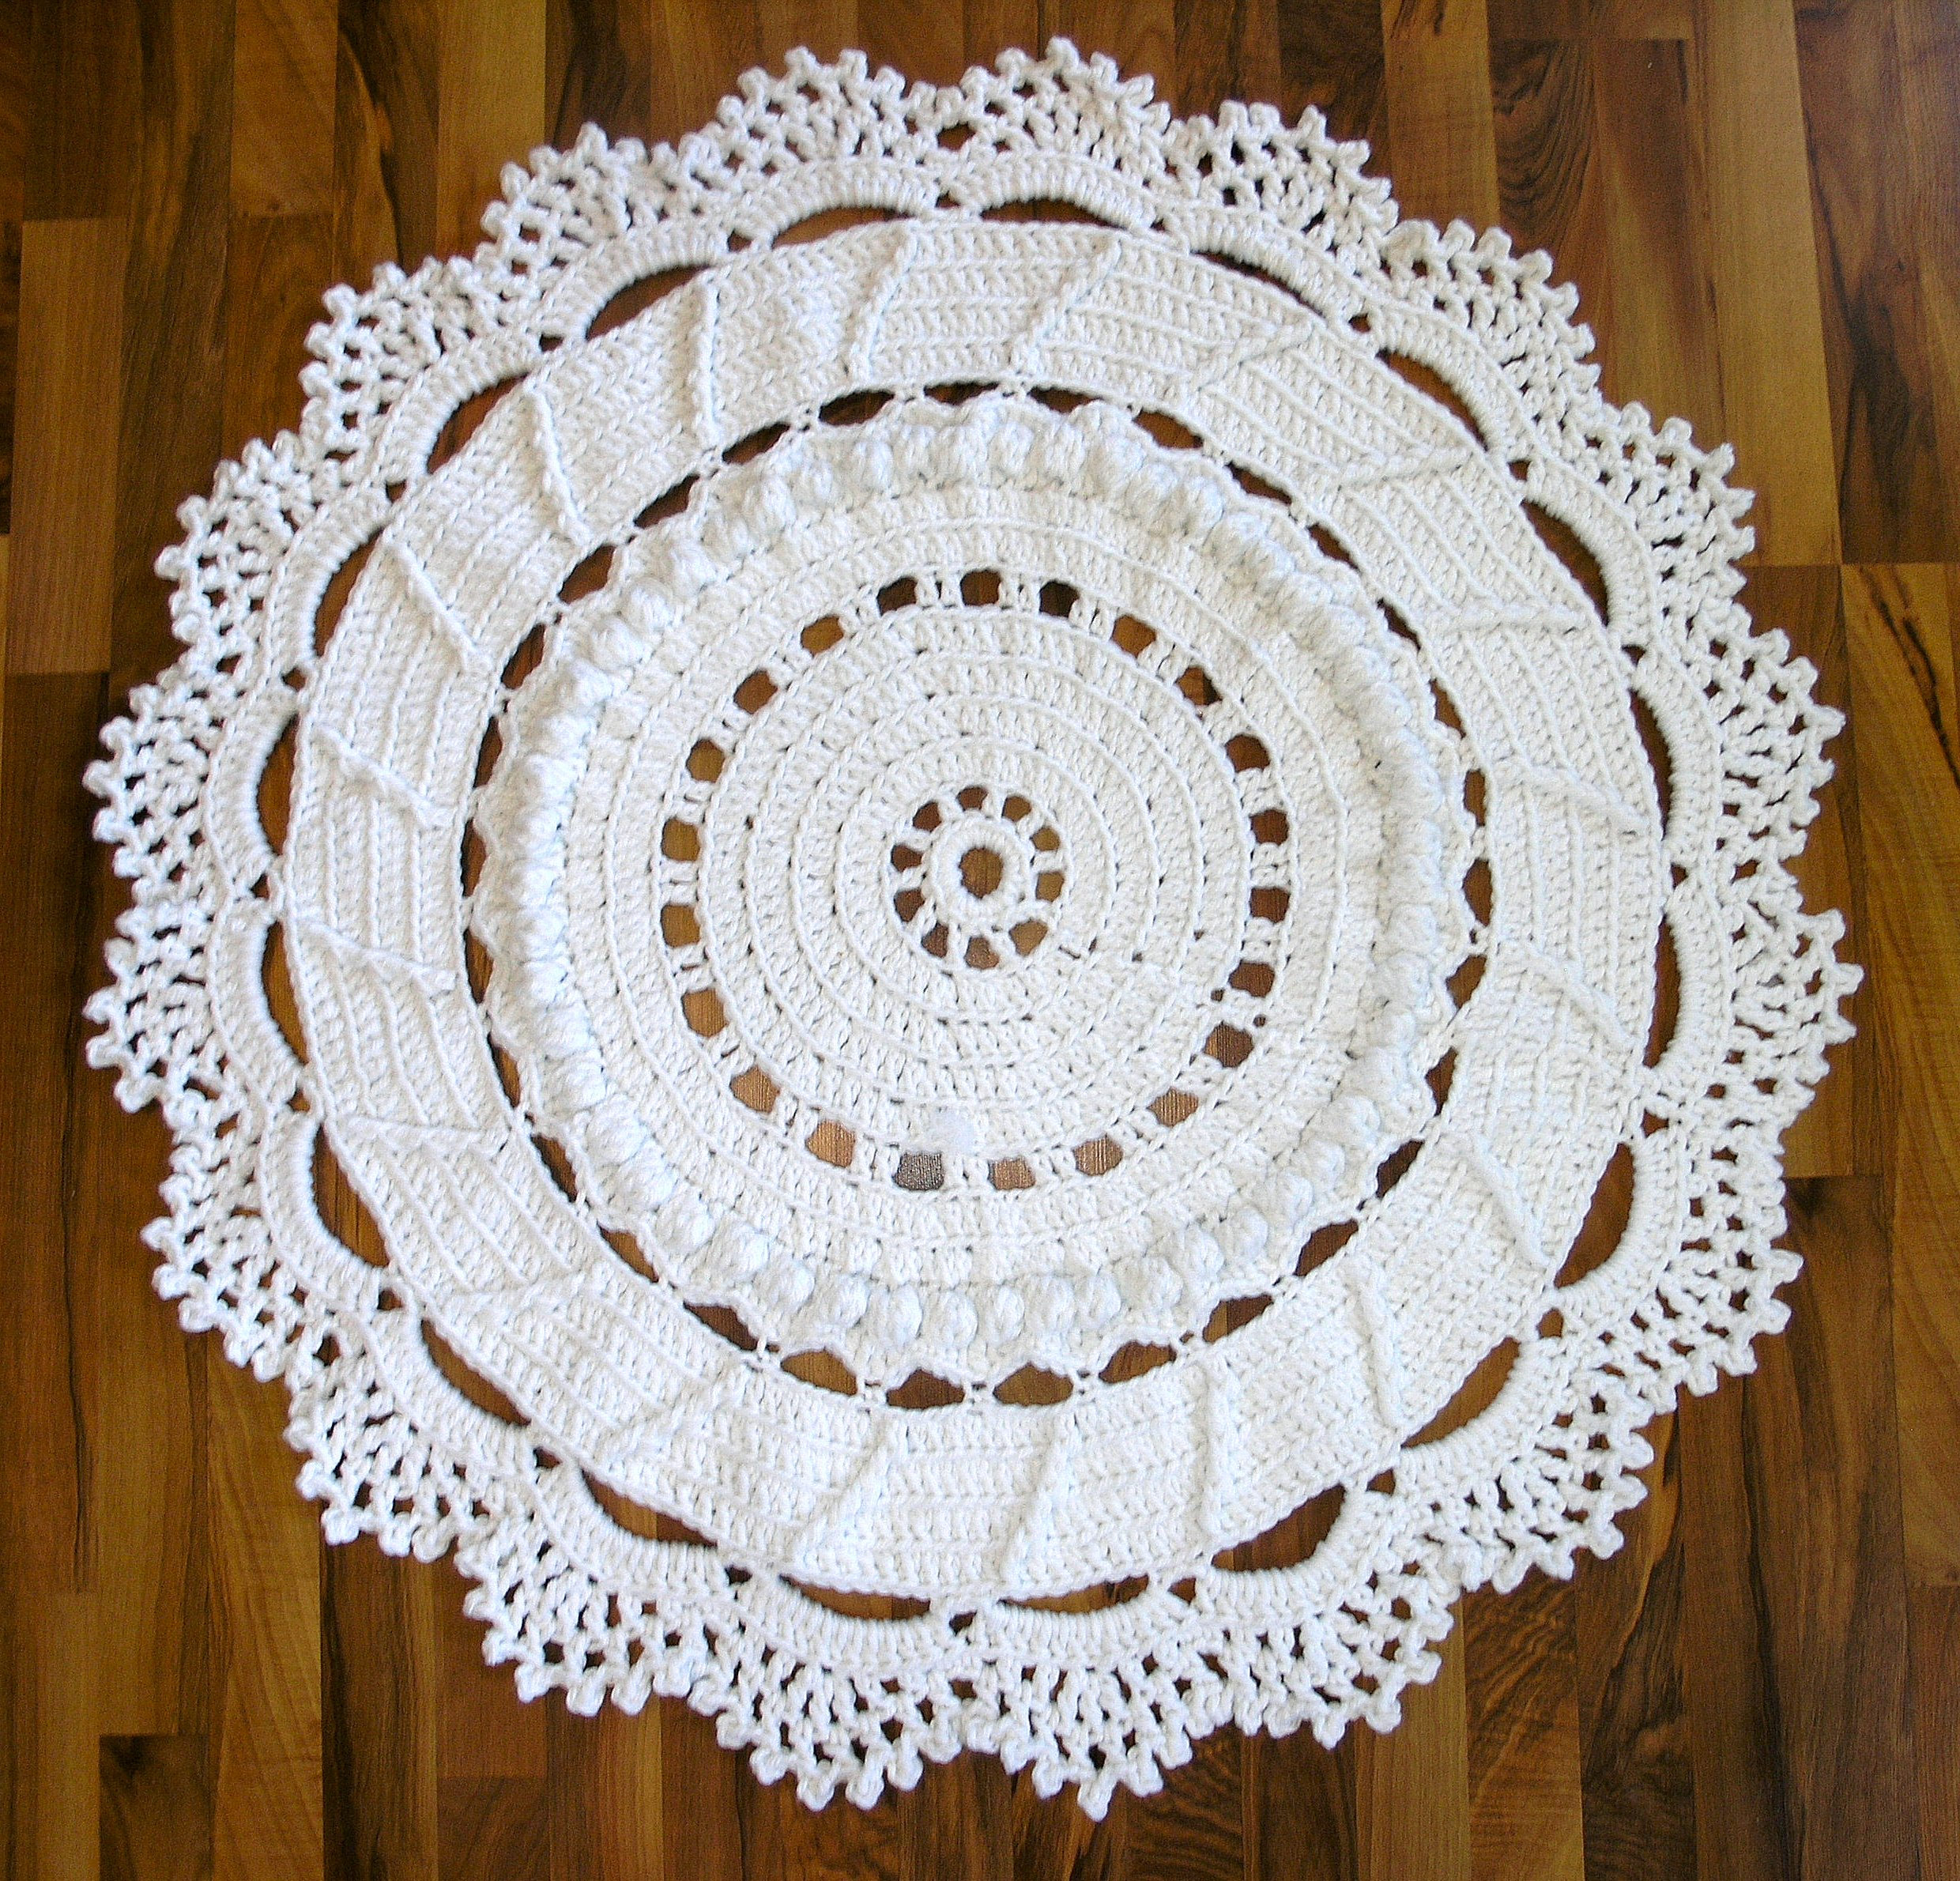 Dances With Wools Blog Archive A Giant Crochet Doily ...